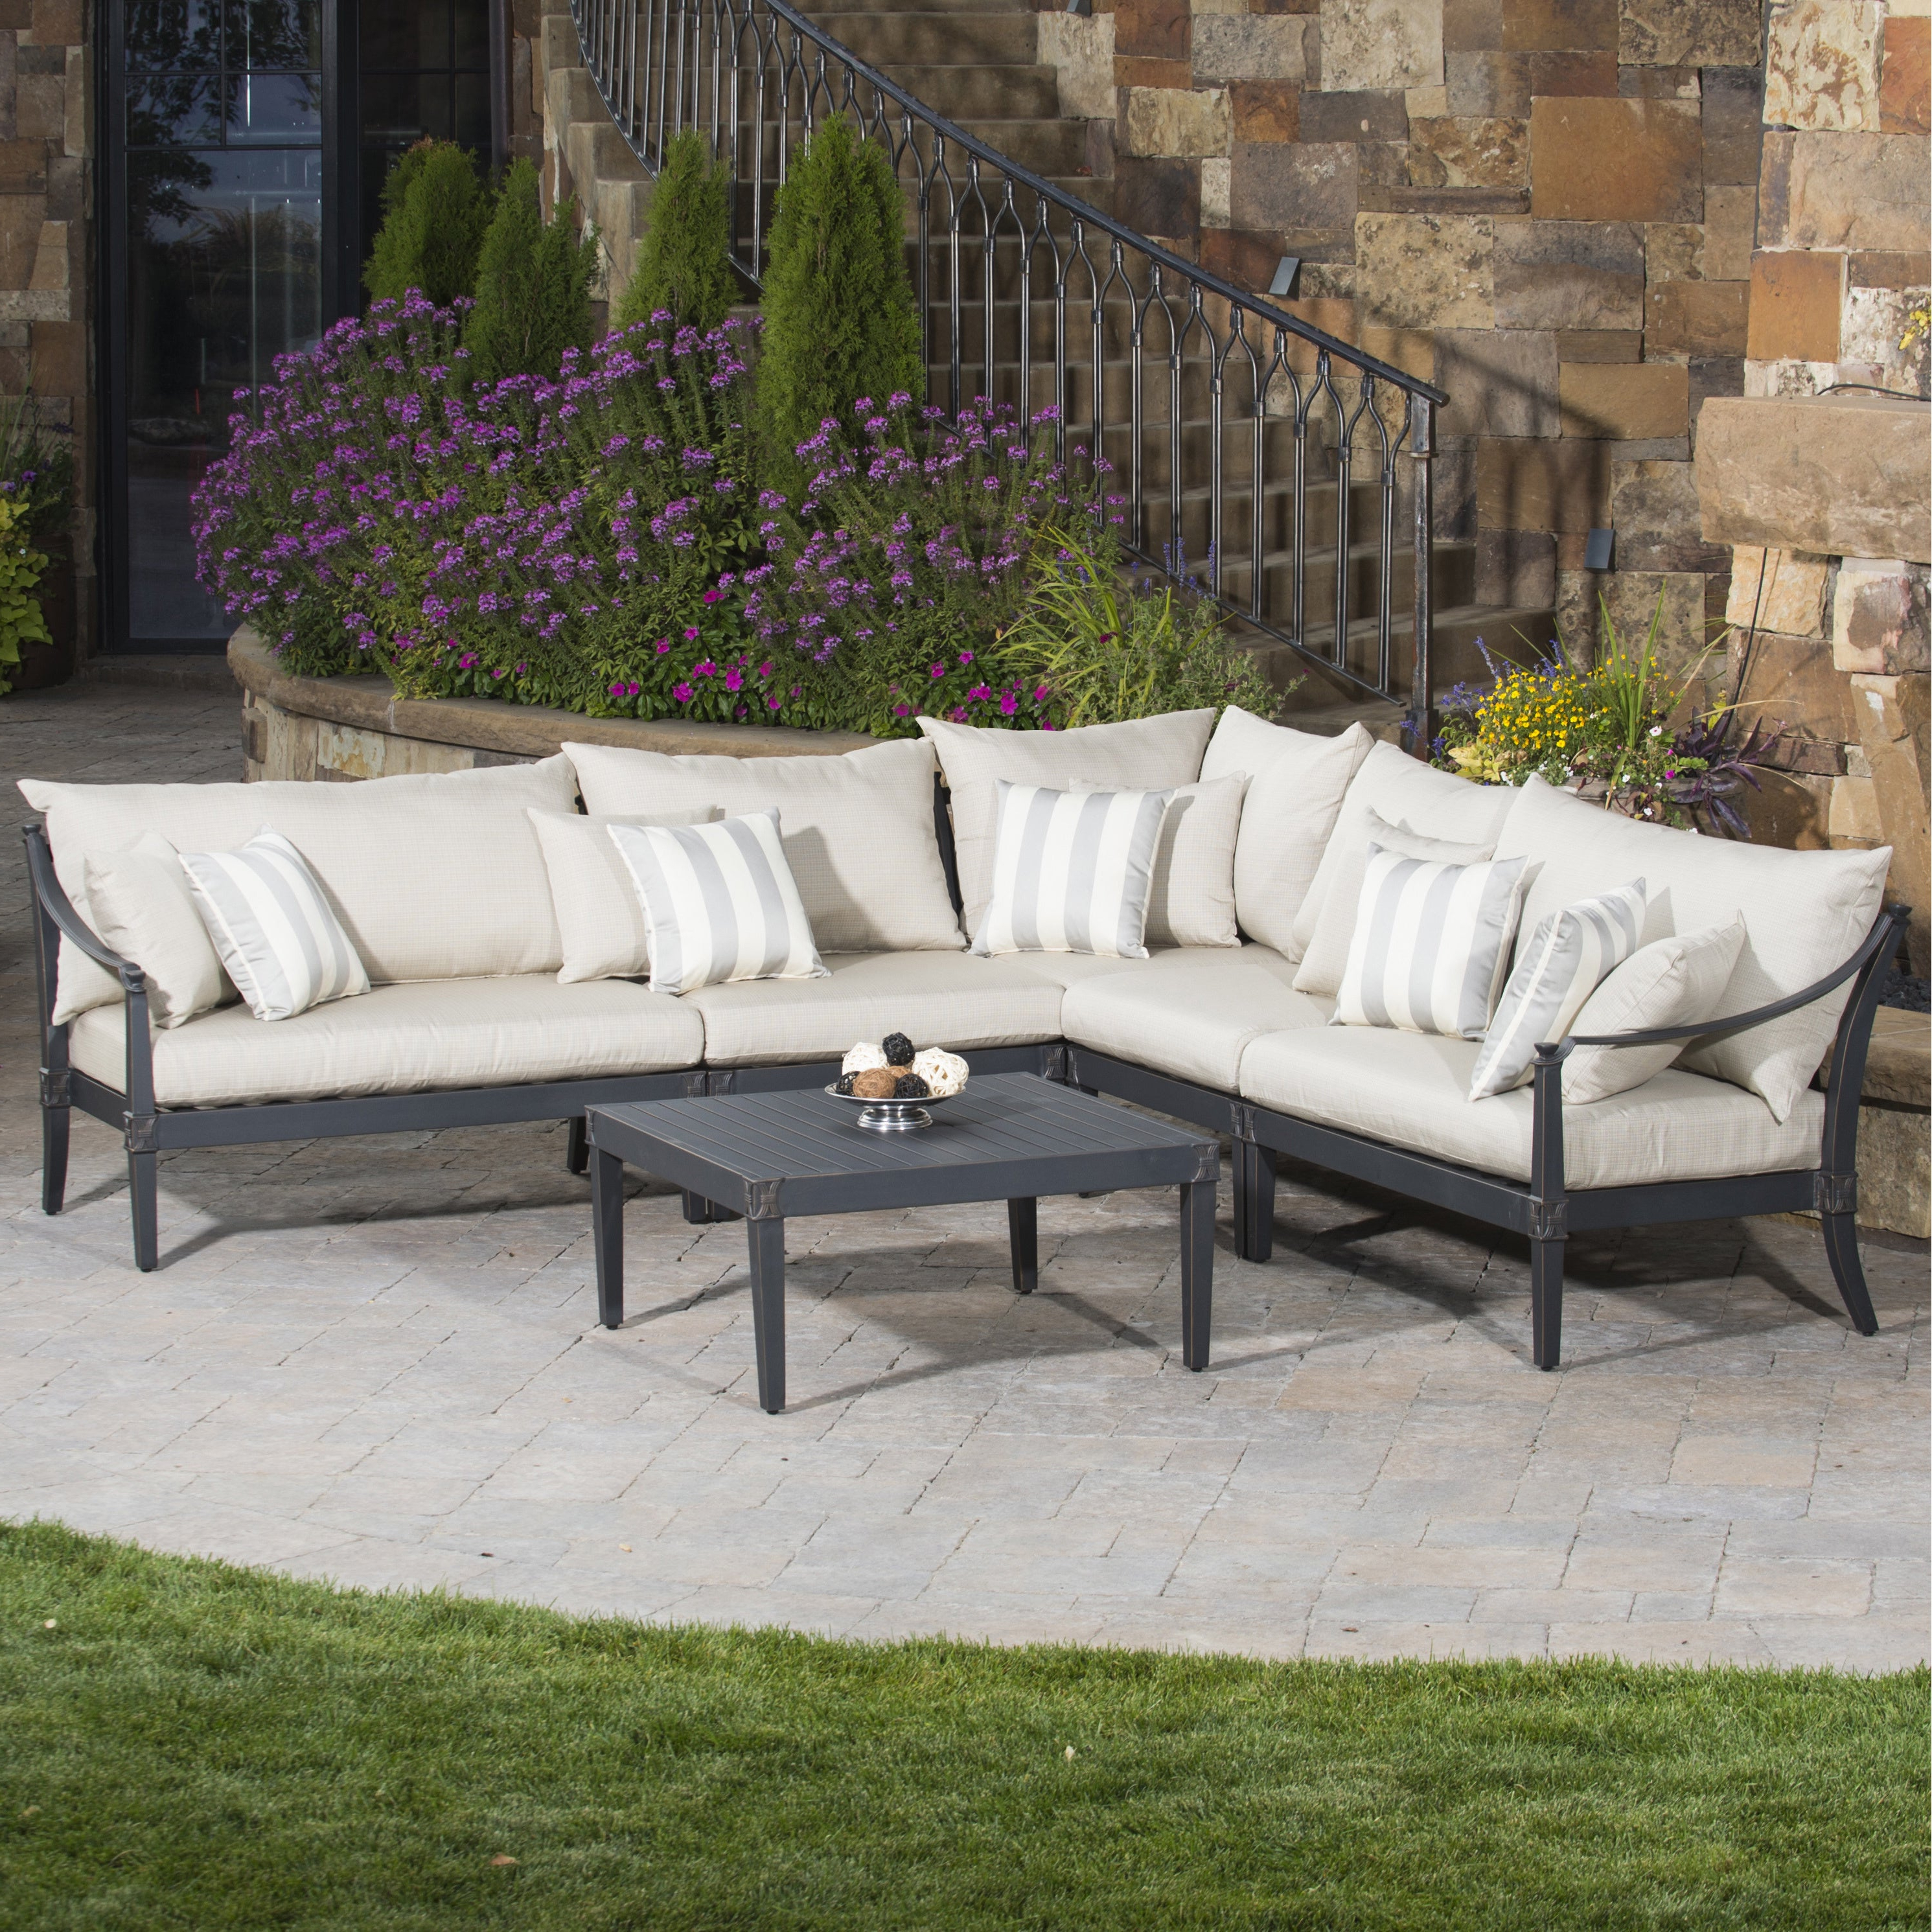 2020 Rst Brands Astoria Aluminum 6 Piece Outdoor Corner Sectional Set With Cushions Inside Tess Corner Living Patio Sectionals With Cushions (View 13 of 20)